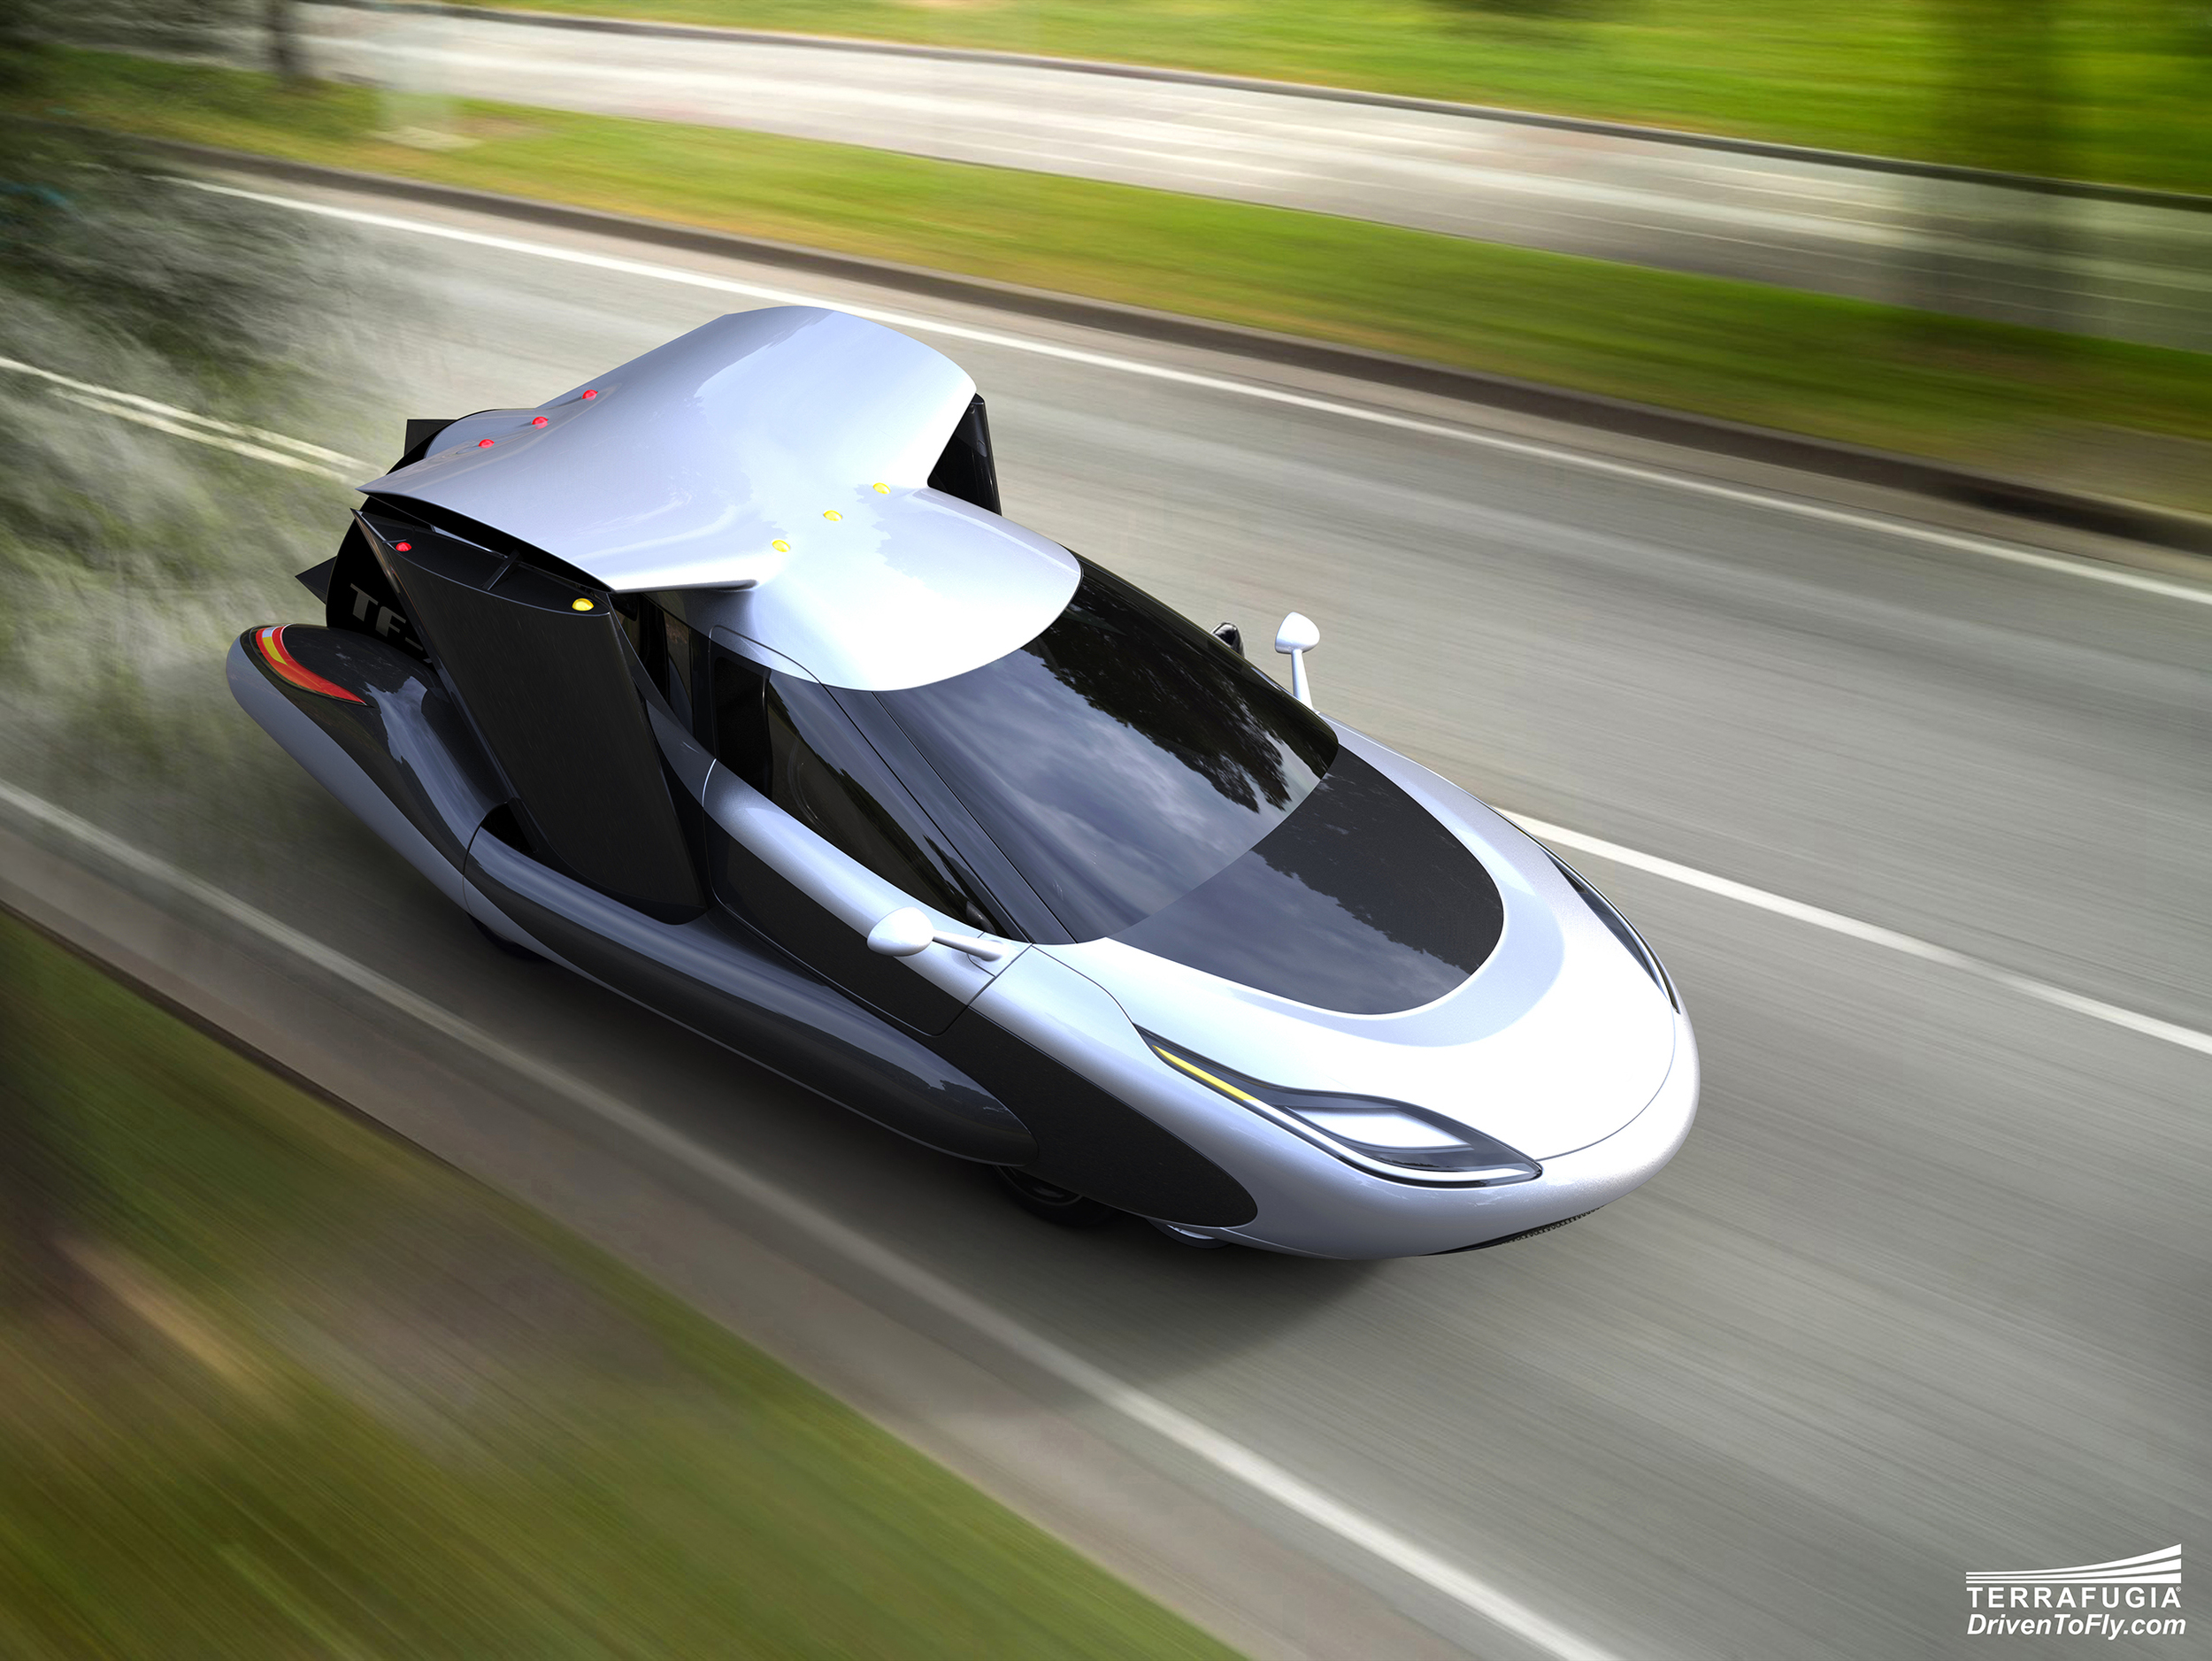 Terrafugia reveals new flying car